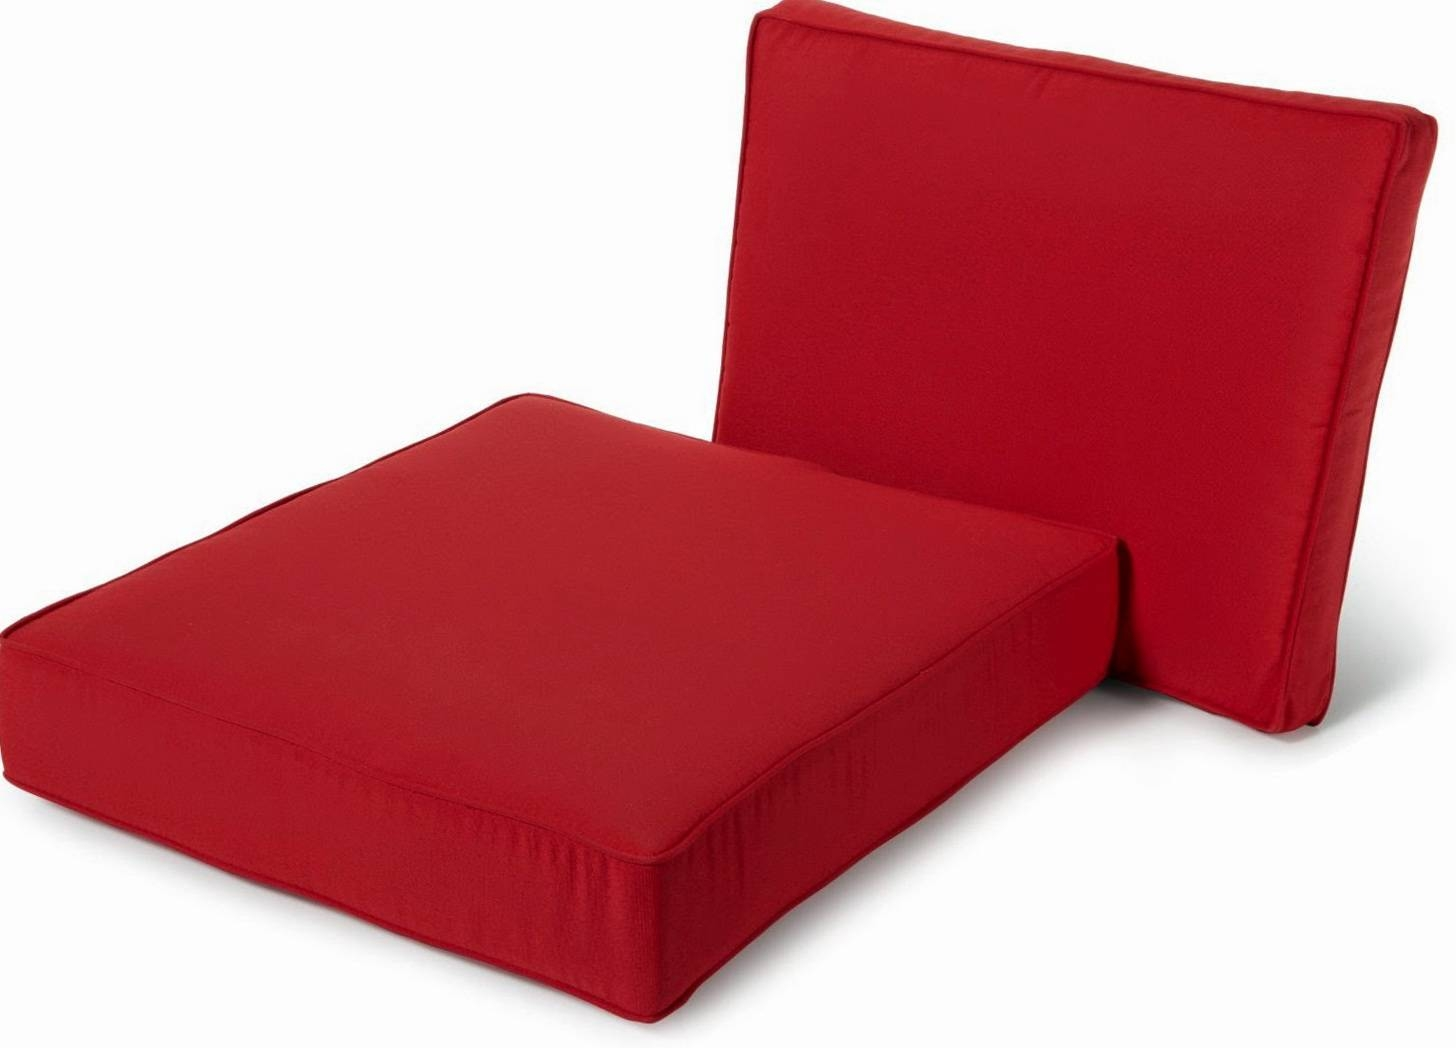 Leather Sofa Seat Cushion Covers 19 With Leather Sofa Seat Cushion intended for Sofa Cushion Covers (Image 9 of 15)